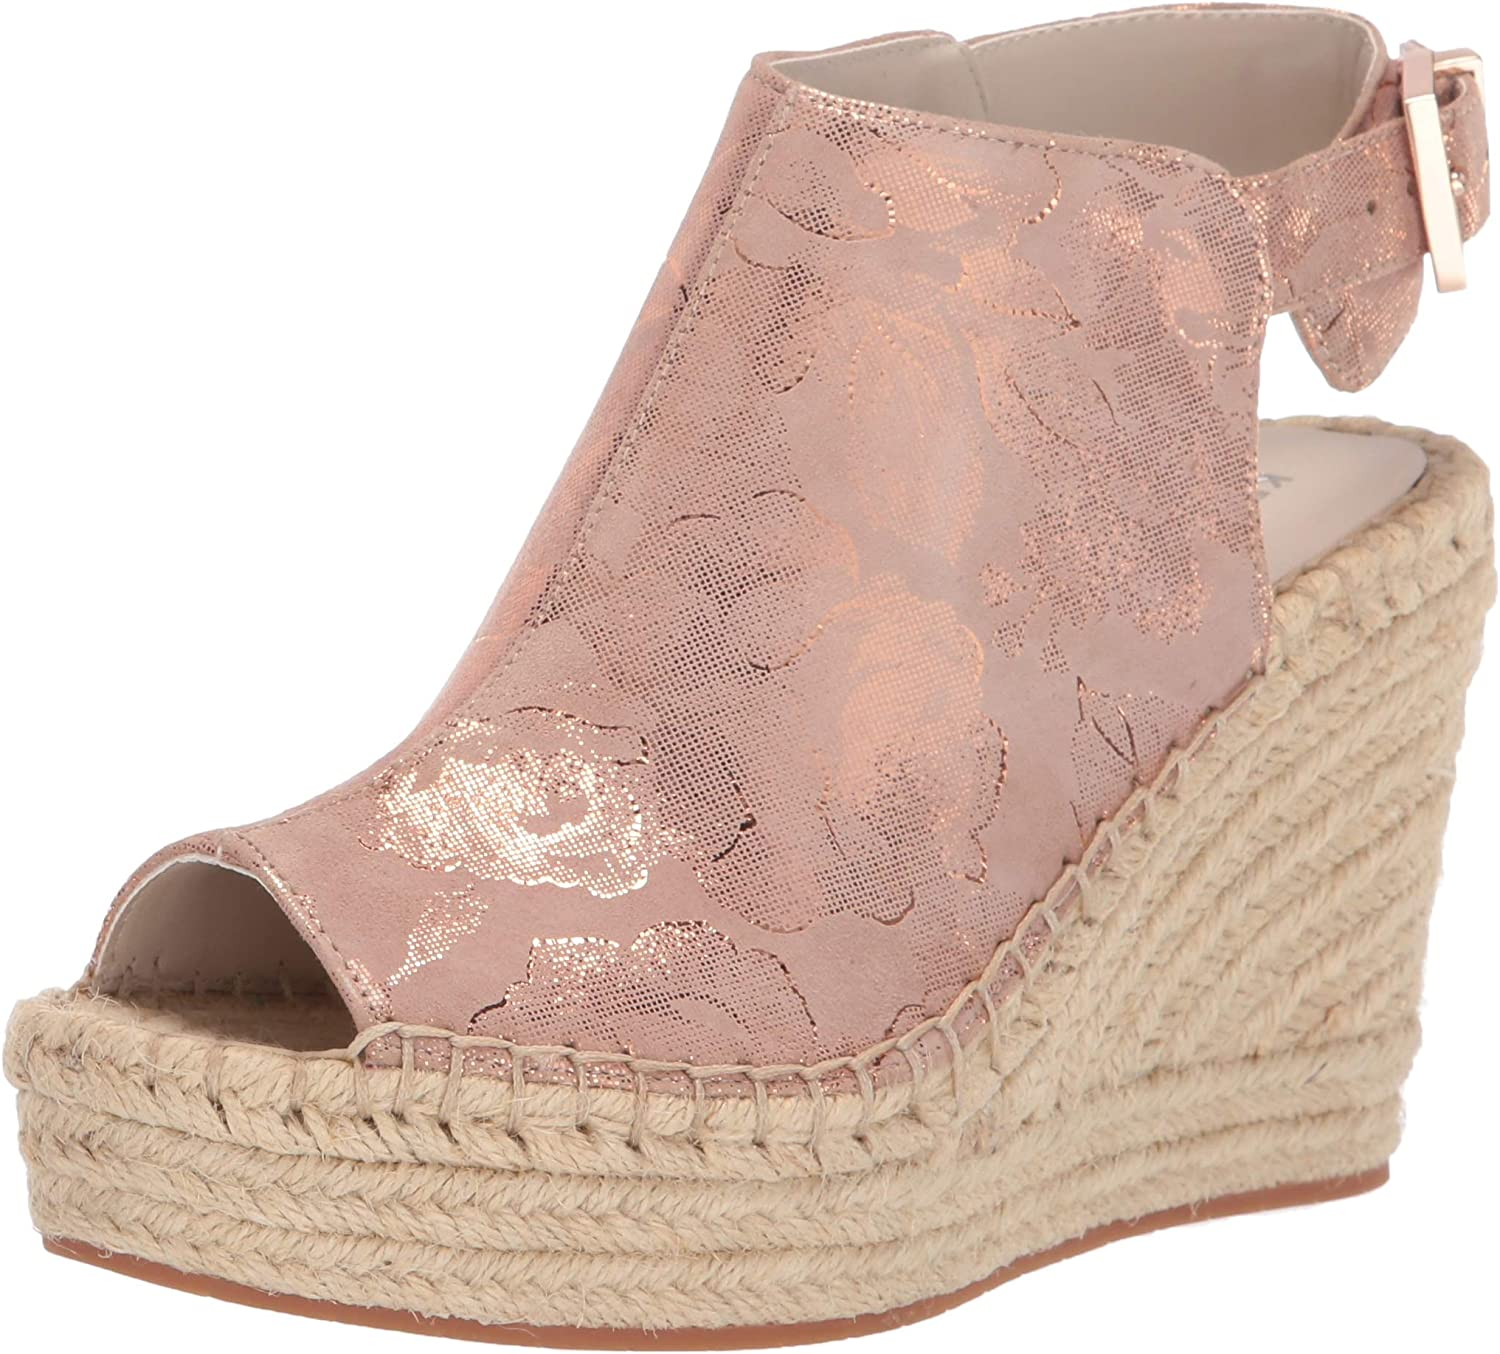 Kenneth Cole New York Womens 7 Olivia Espadrille Wedge Espadrille Wedge Sandal